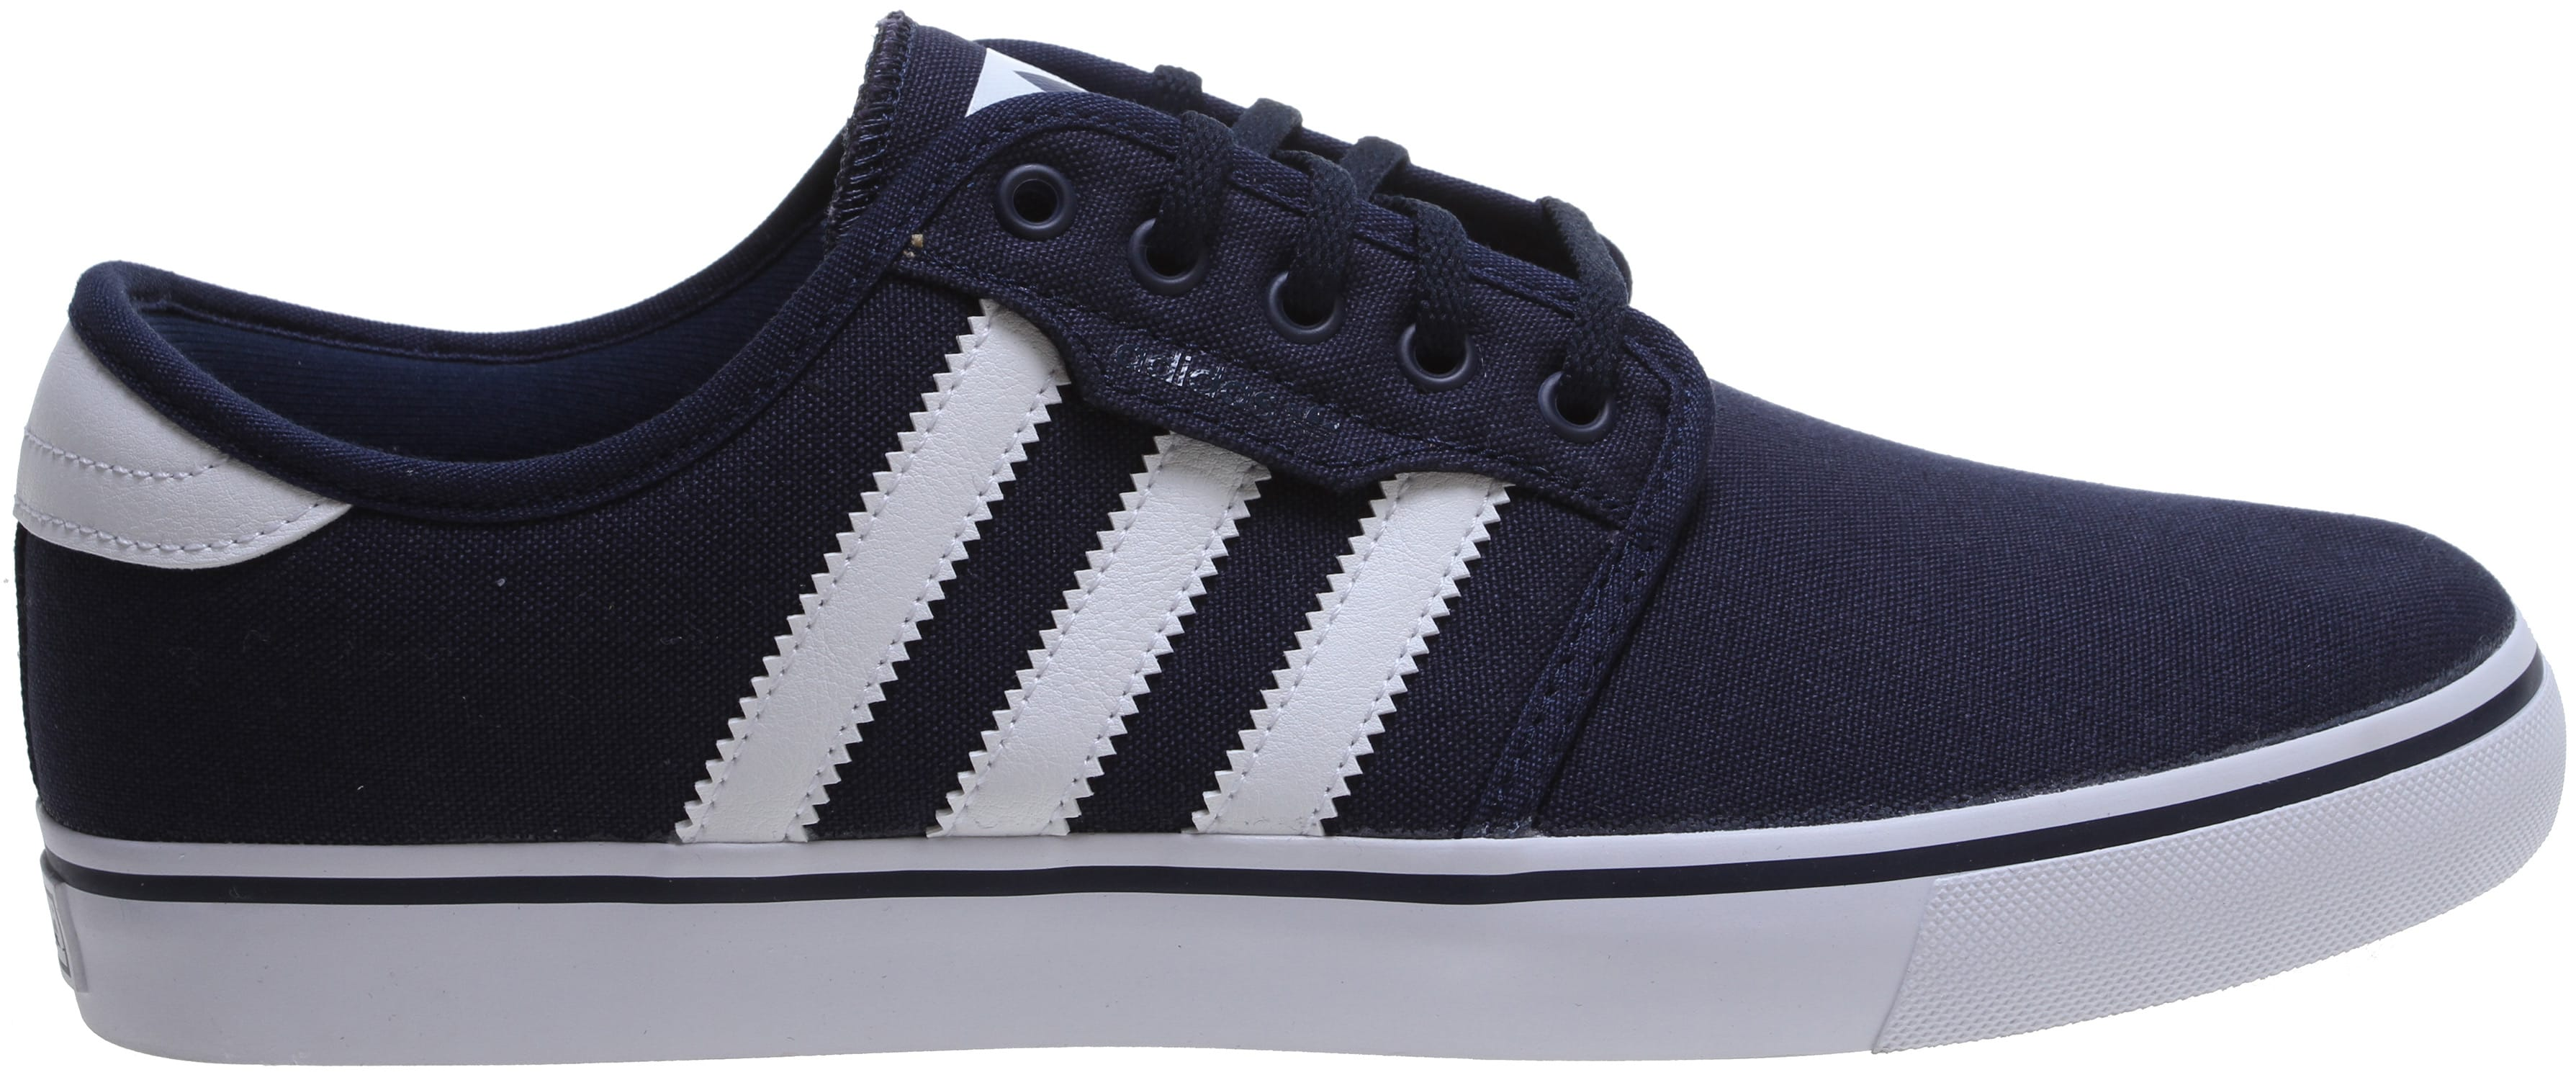 navy blue adidas shoes